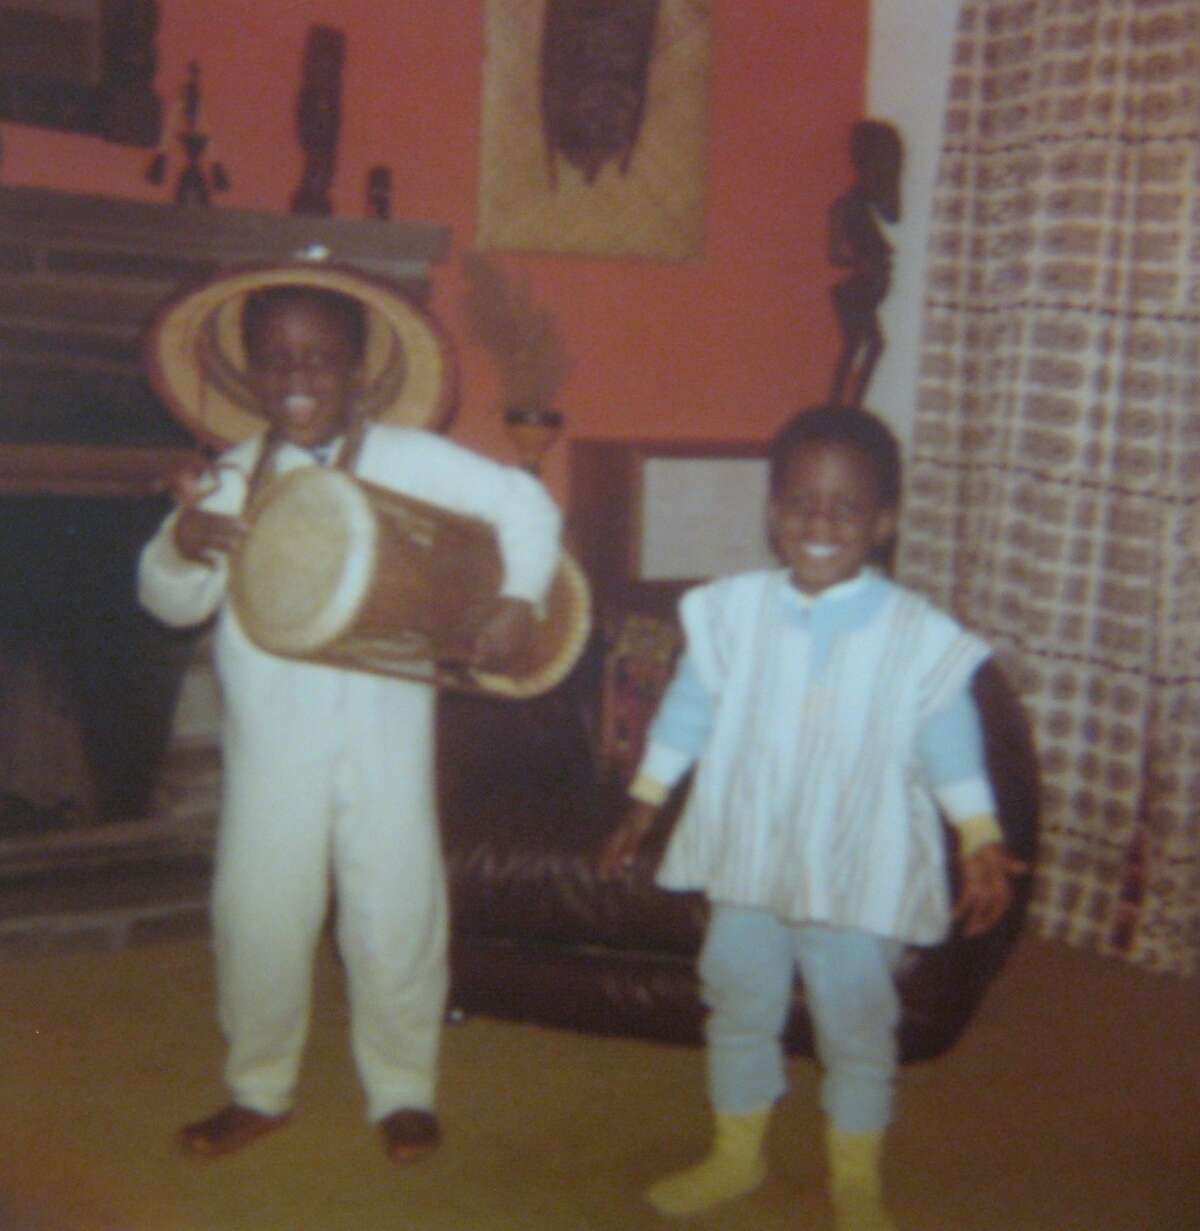 Ato Essandoh, left, and his brother, right. (Provided.)